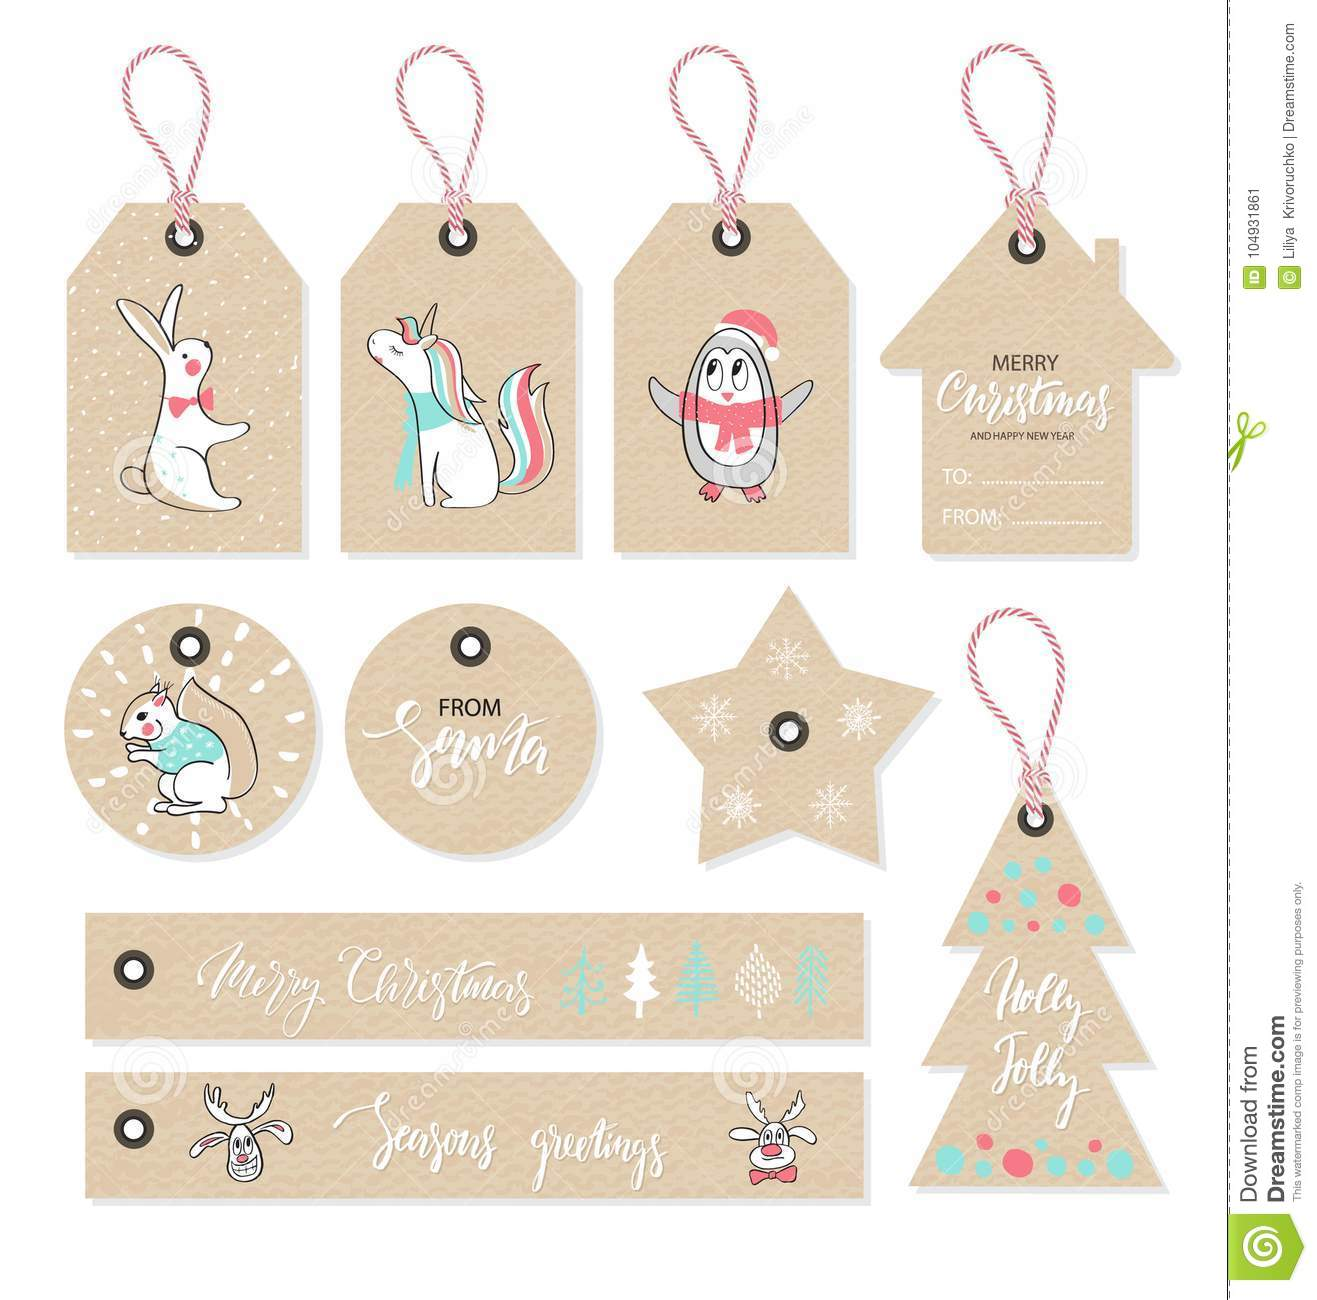 Christmas tags set with cute animals, hand drawn style. Vector illustration.